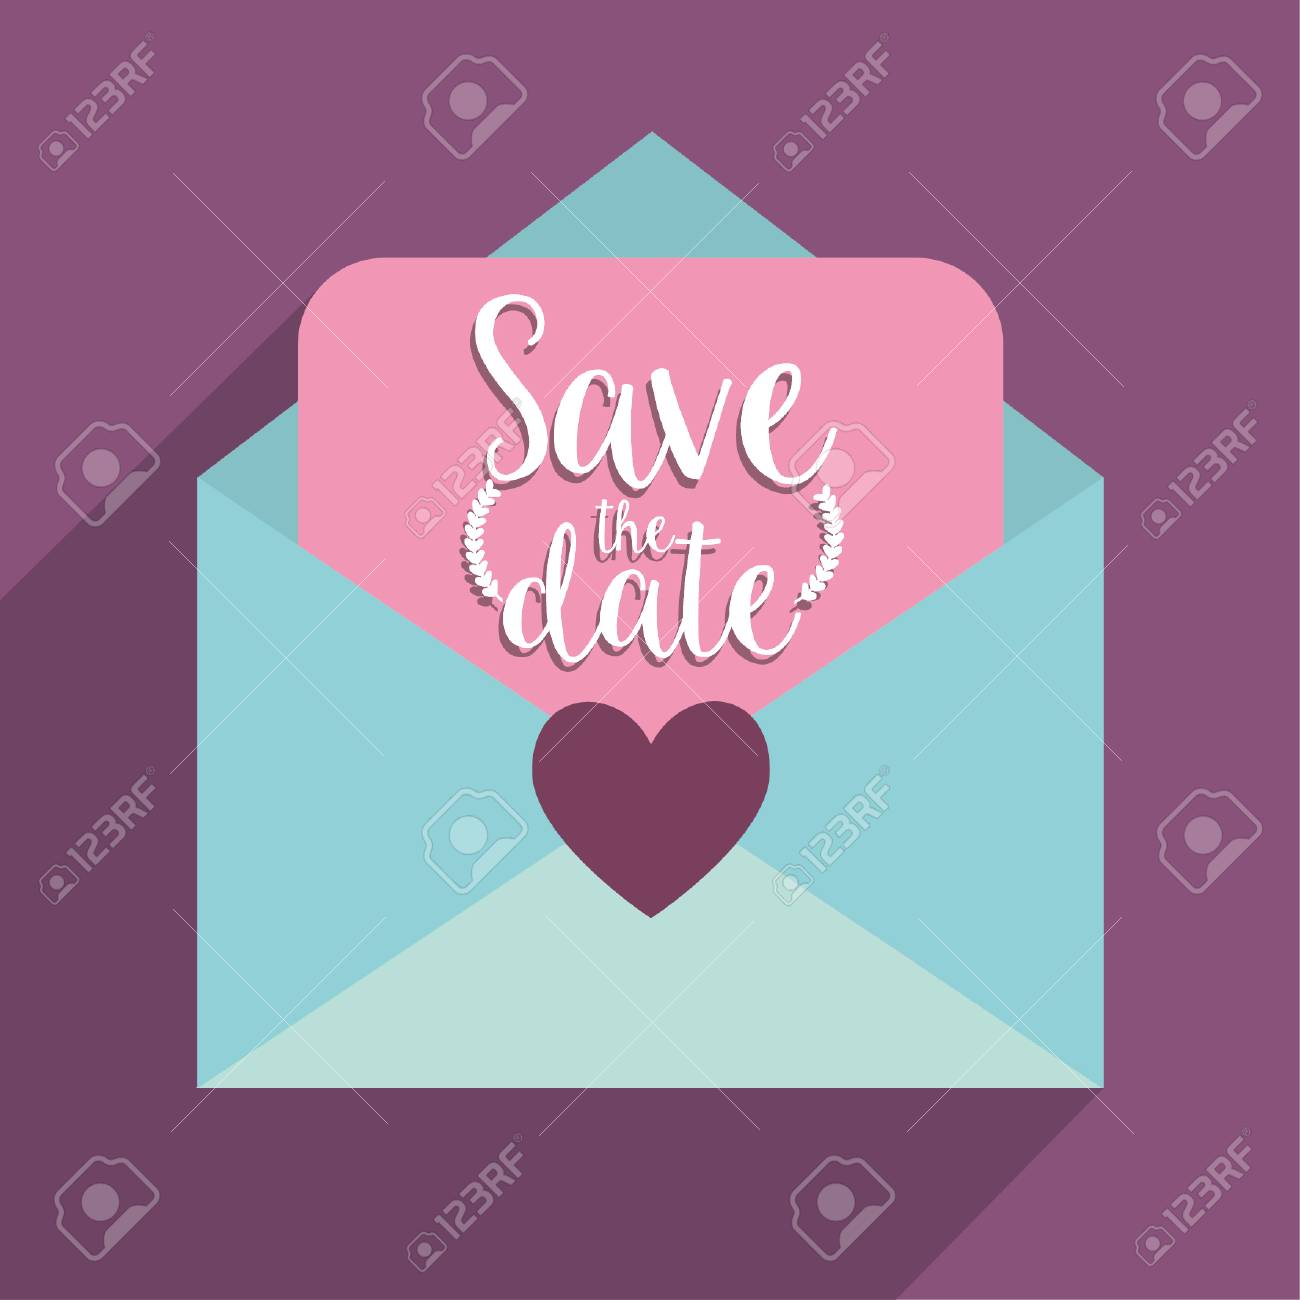 Love Letter Icon Save The Date Wedding And Marriage Theme Colorful